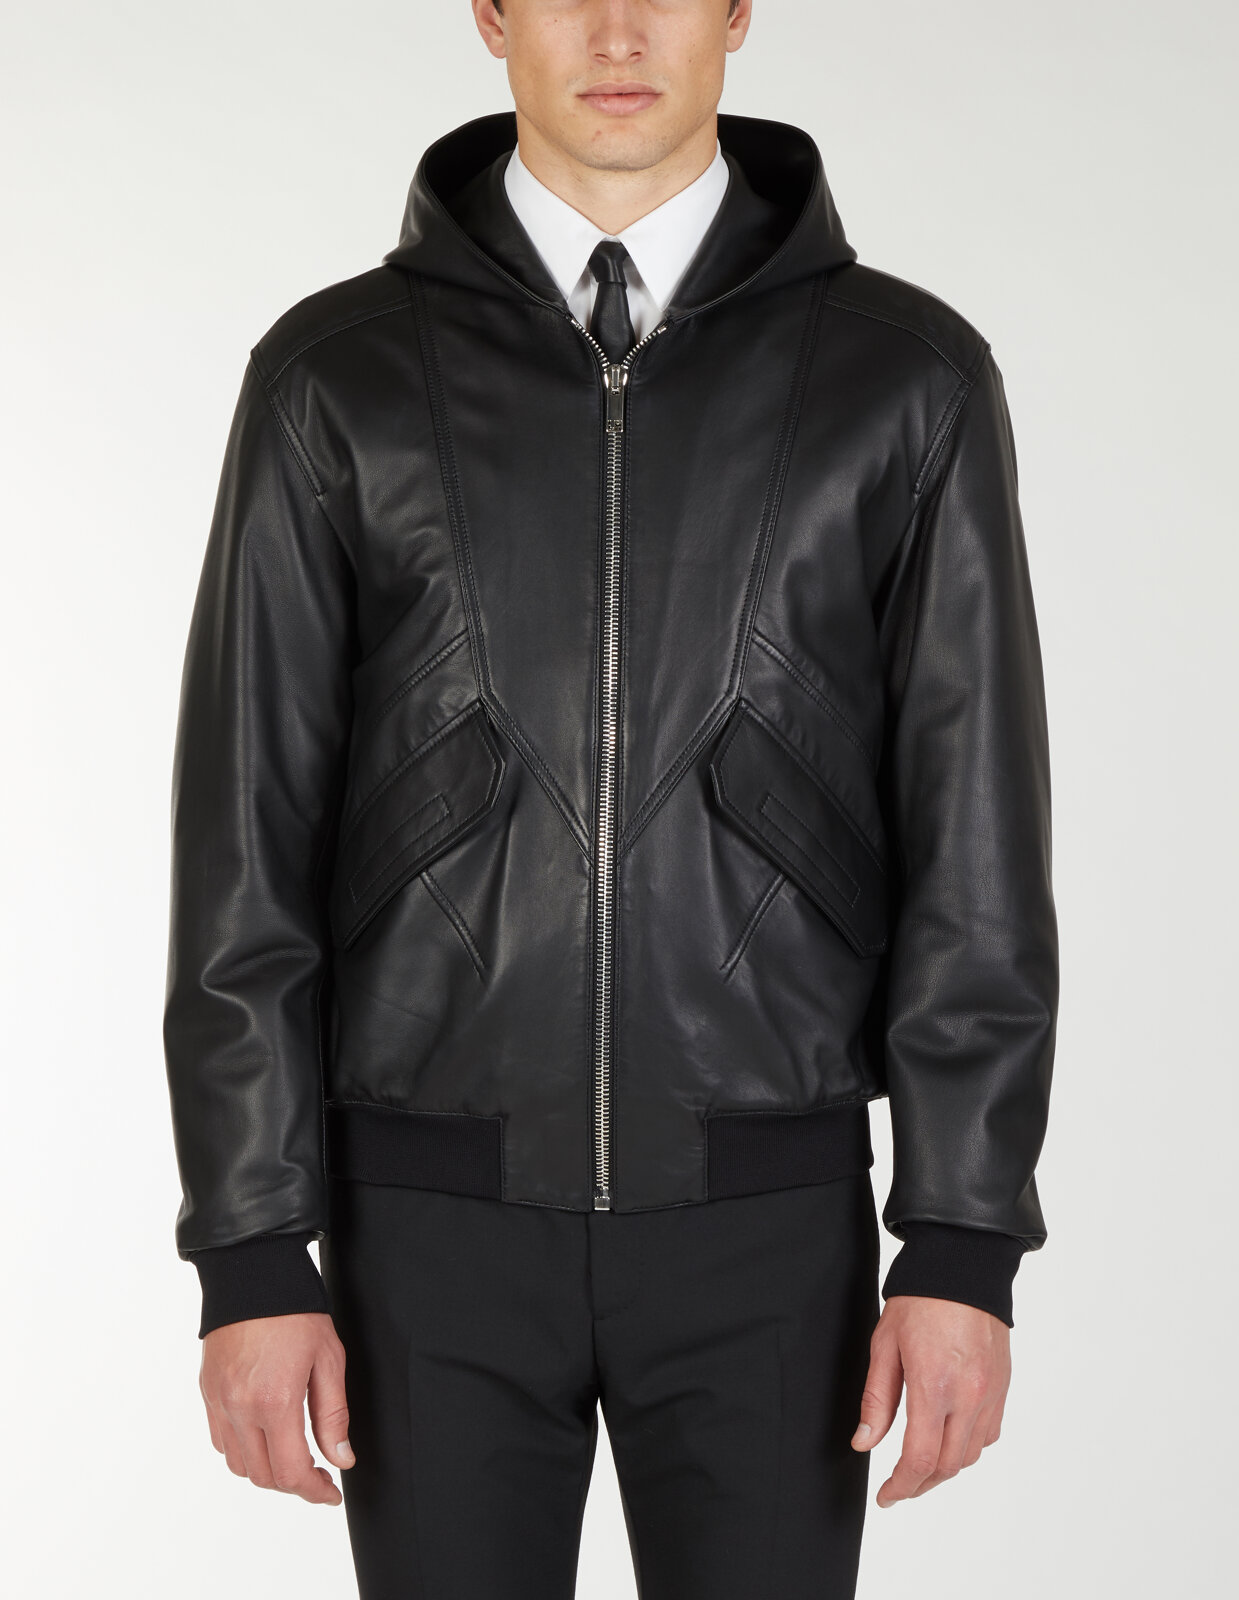 Zipped Leather Jacket With Hood - Les Hommes